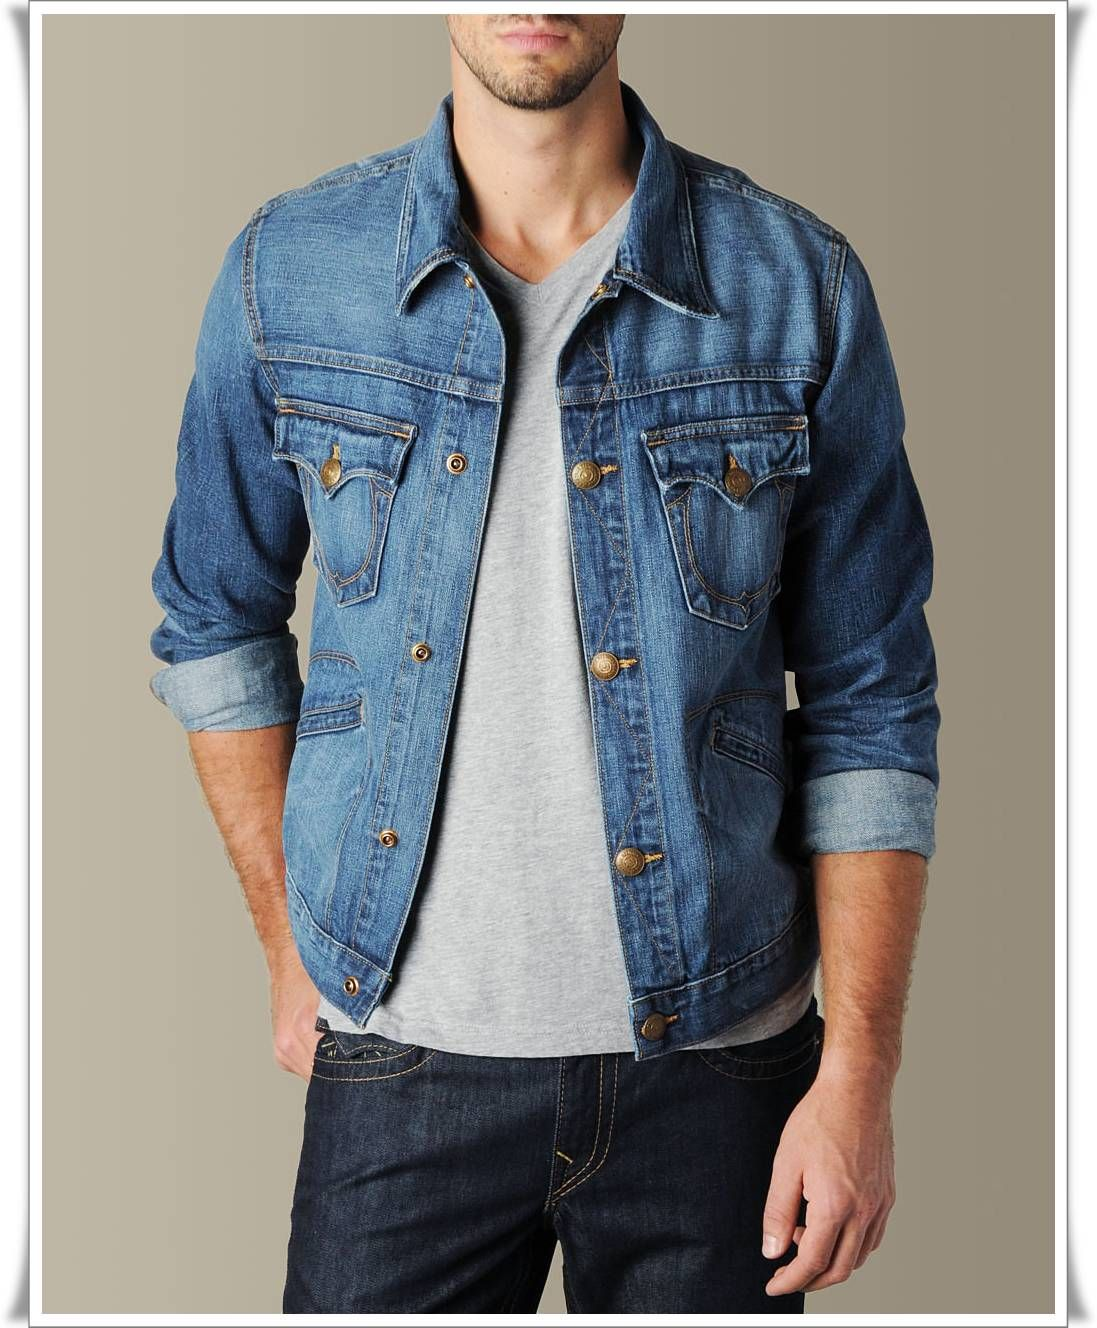 denim-jackets-for-men-photo-denim-jackets-for-men.jpg 1,097×1,328 ...